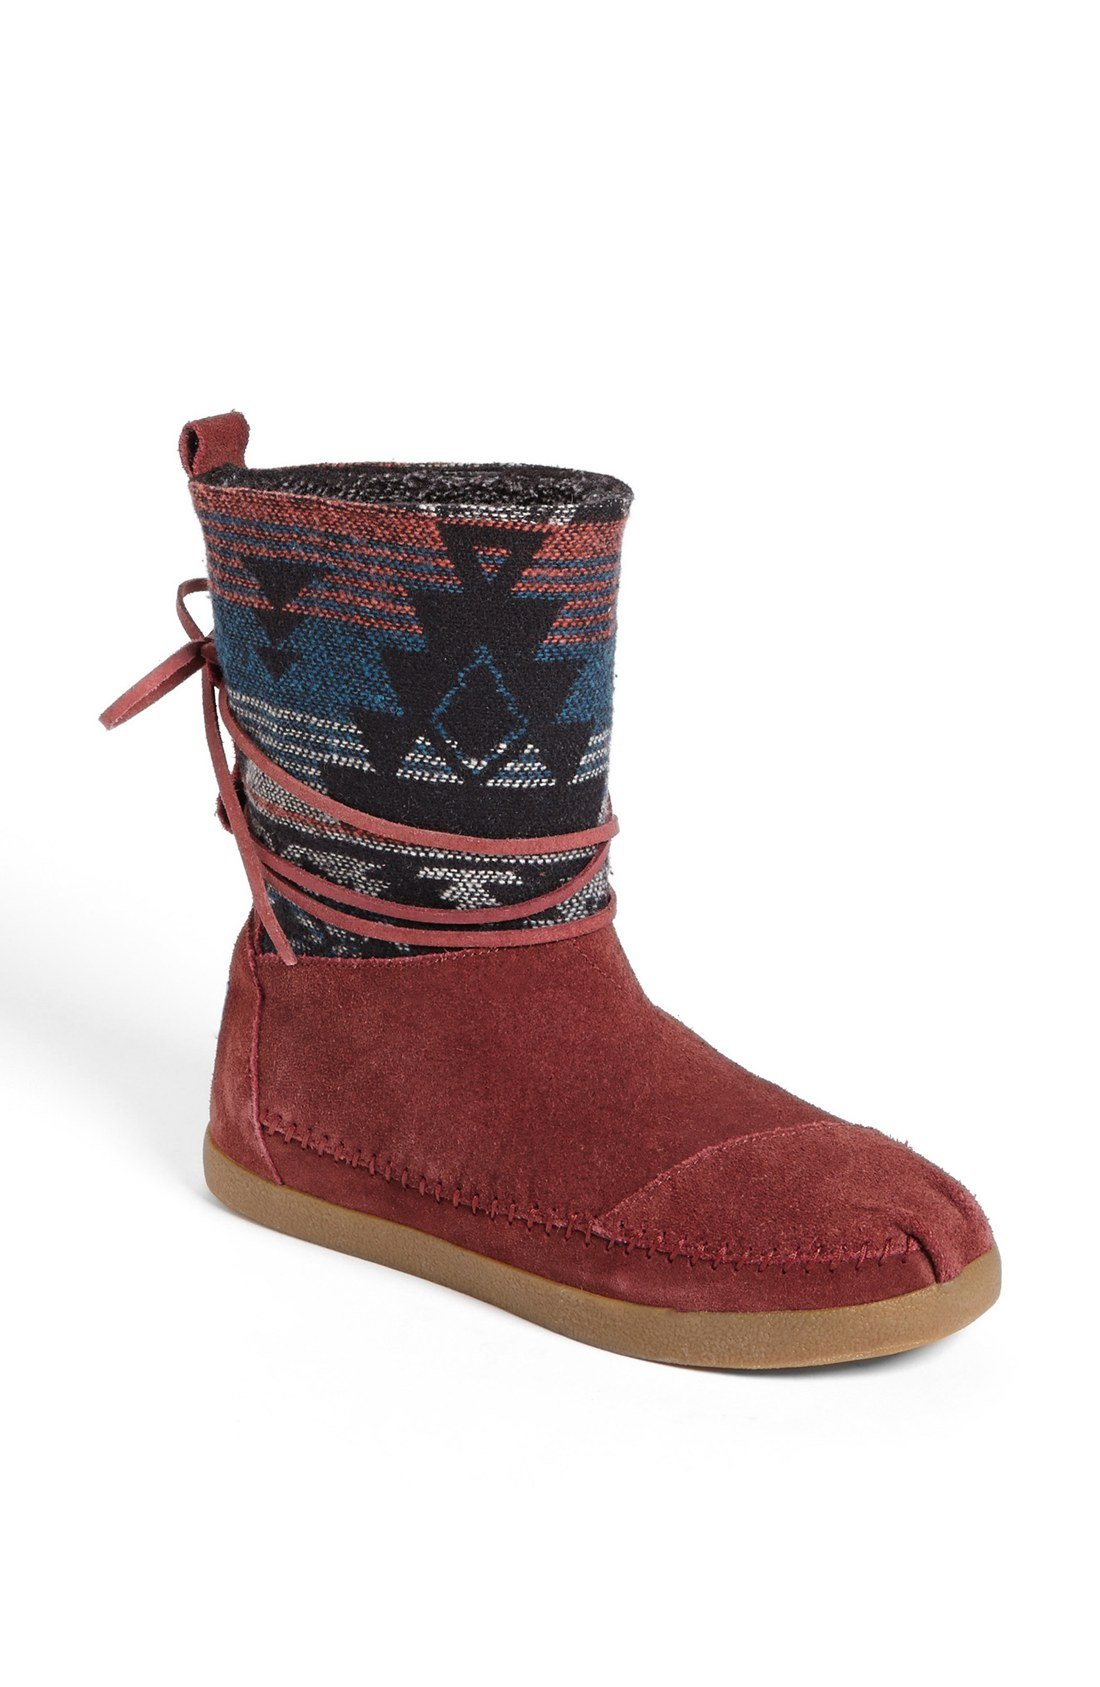 Toms Nepal Jacquard Boot In Multicolor (Burgundy Suede Jacquard) | Lyst